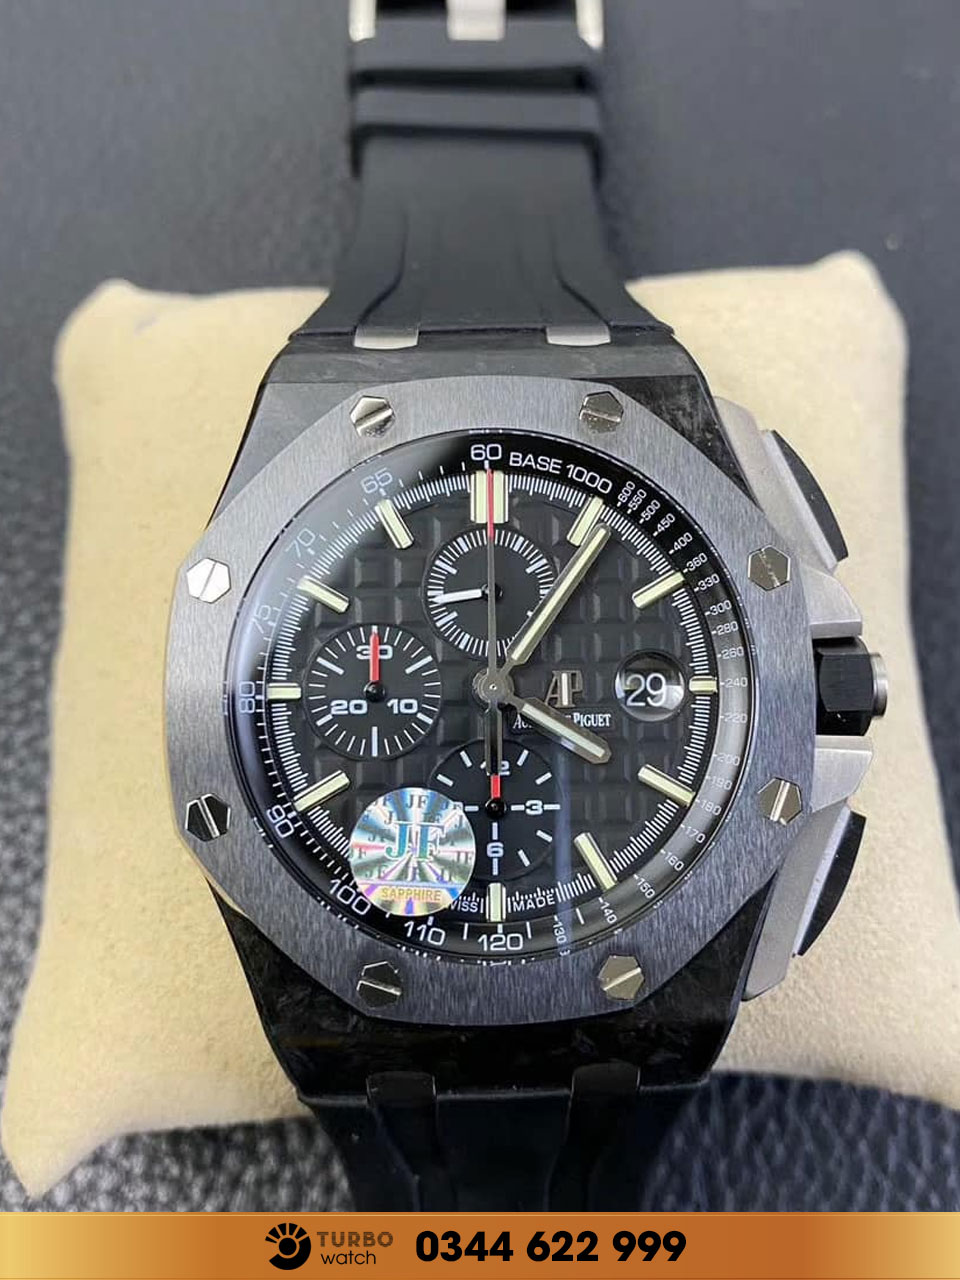 Audemas piguet  Royal Oak Offshore Chronograph  Black Carbon Ceramic replica 1-1 cao cấp